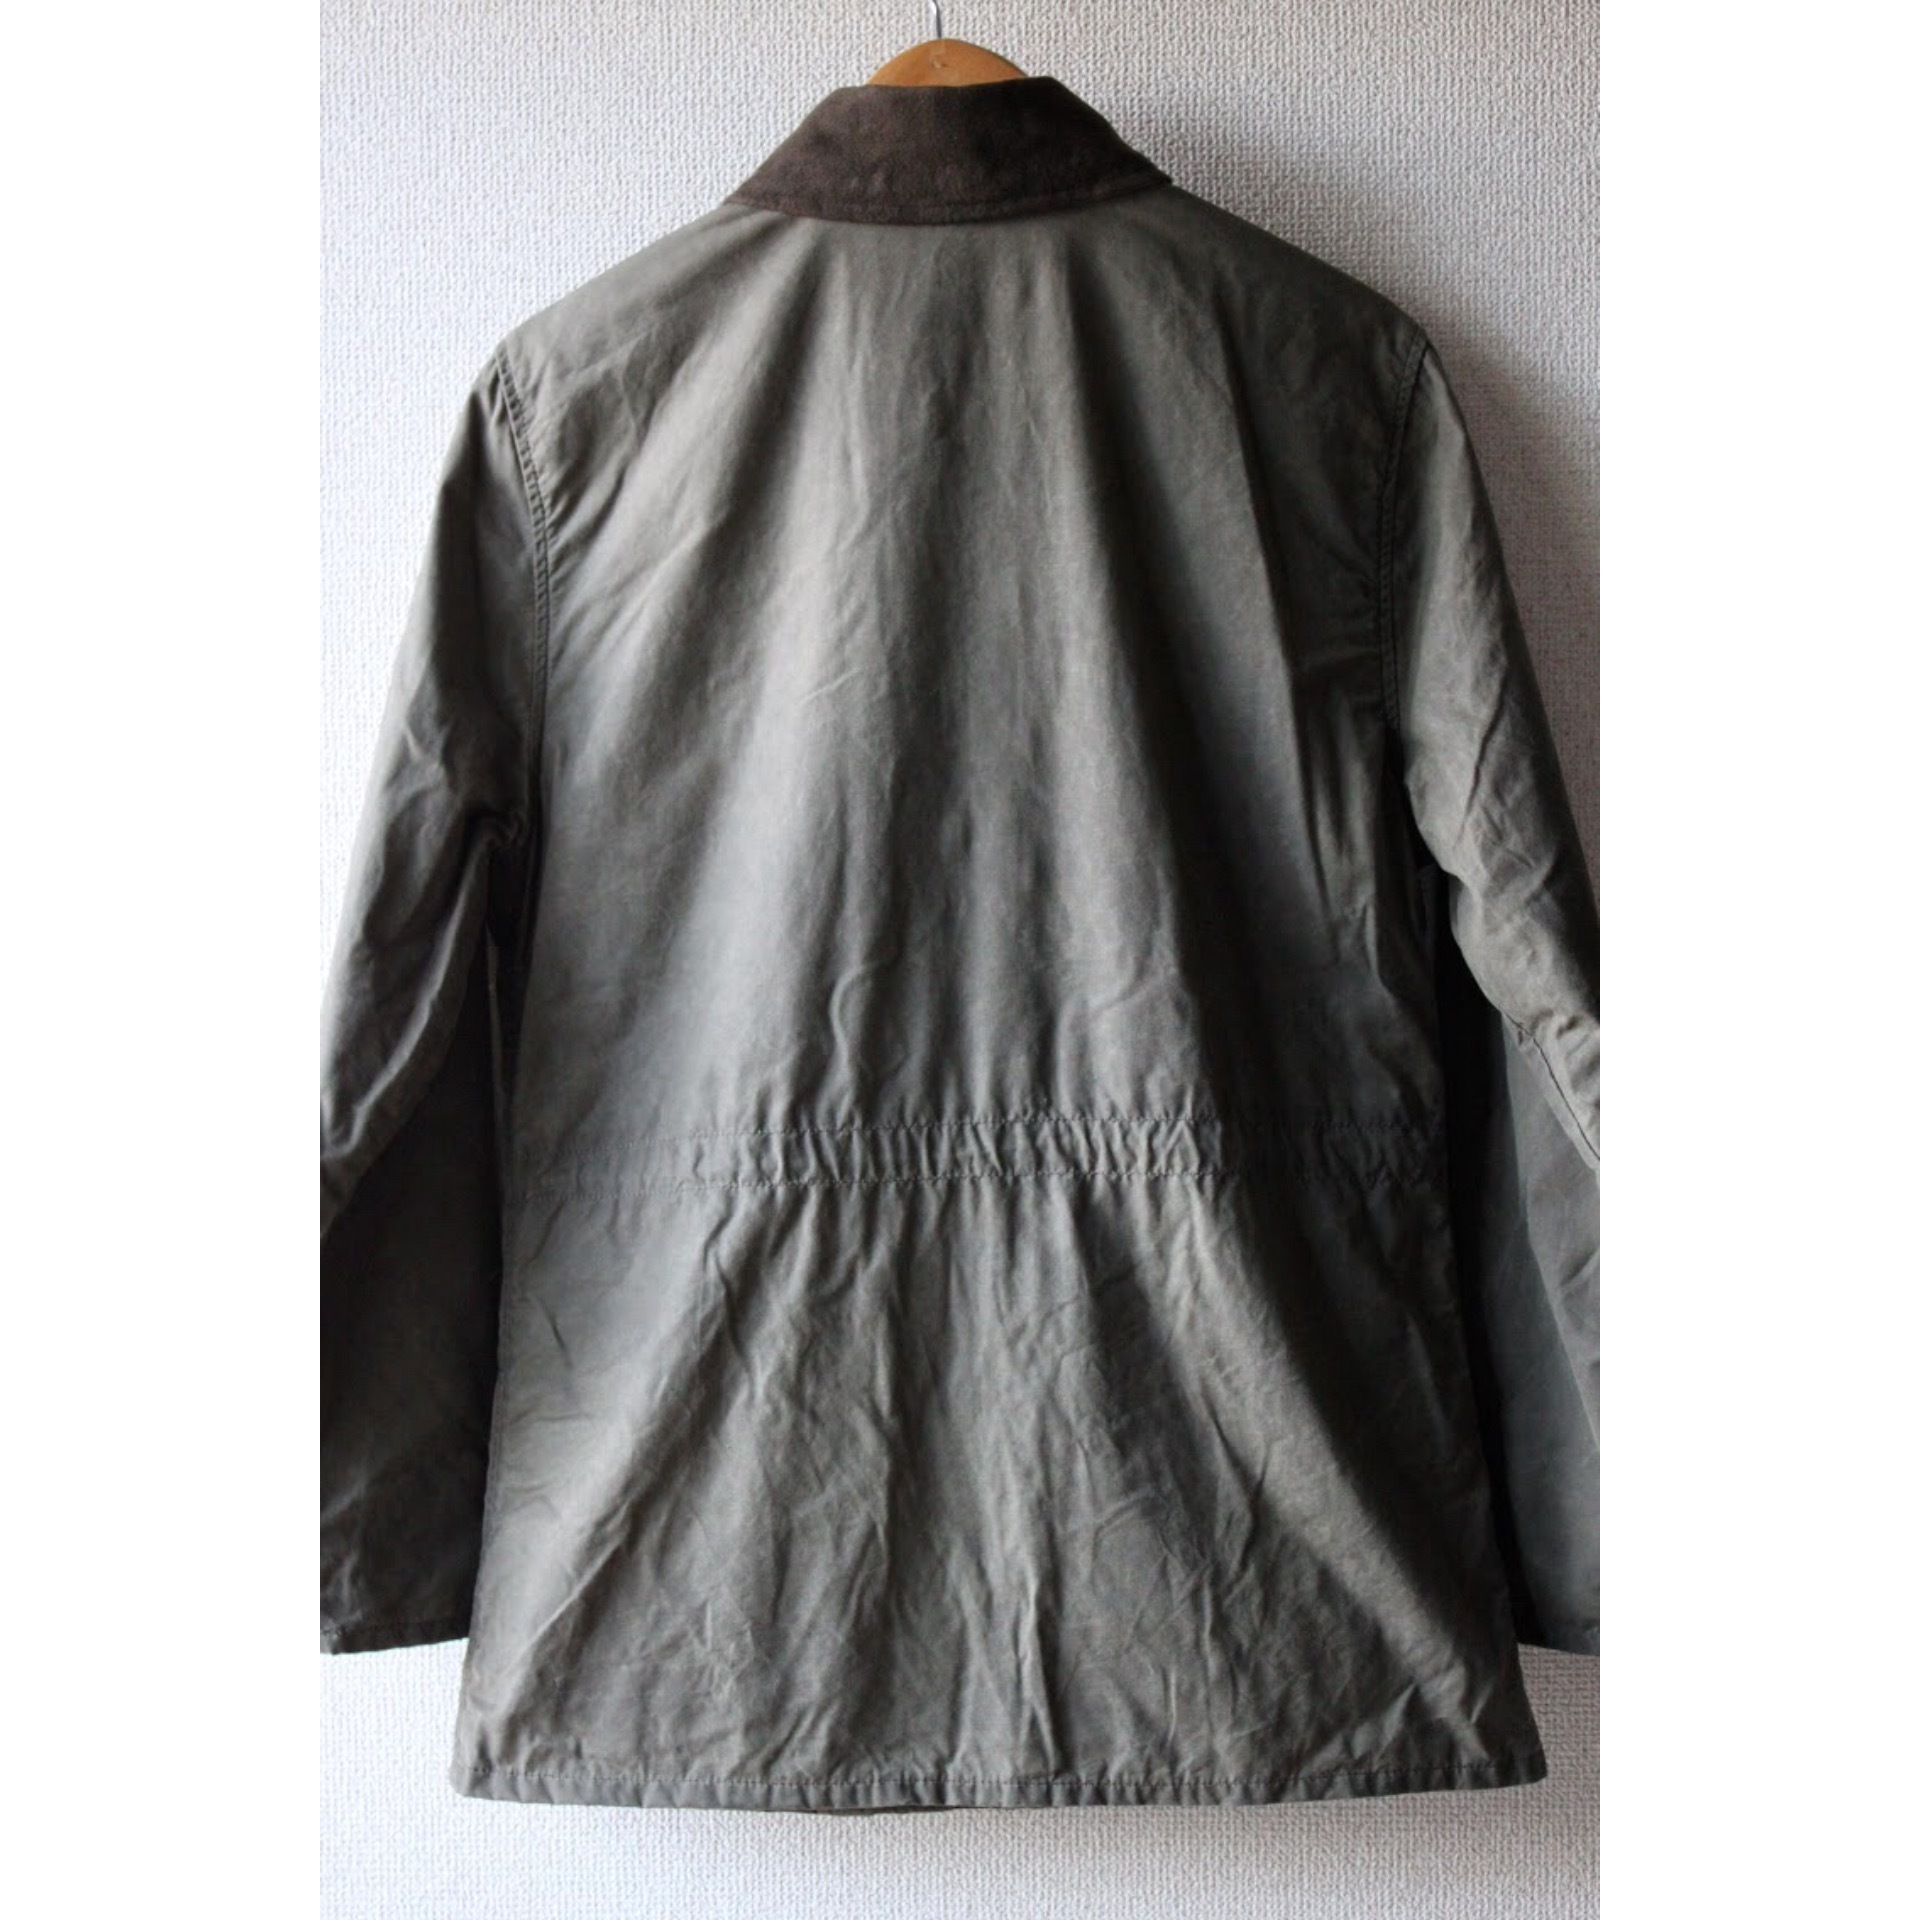 Vintage oiled jacket by Filson